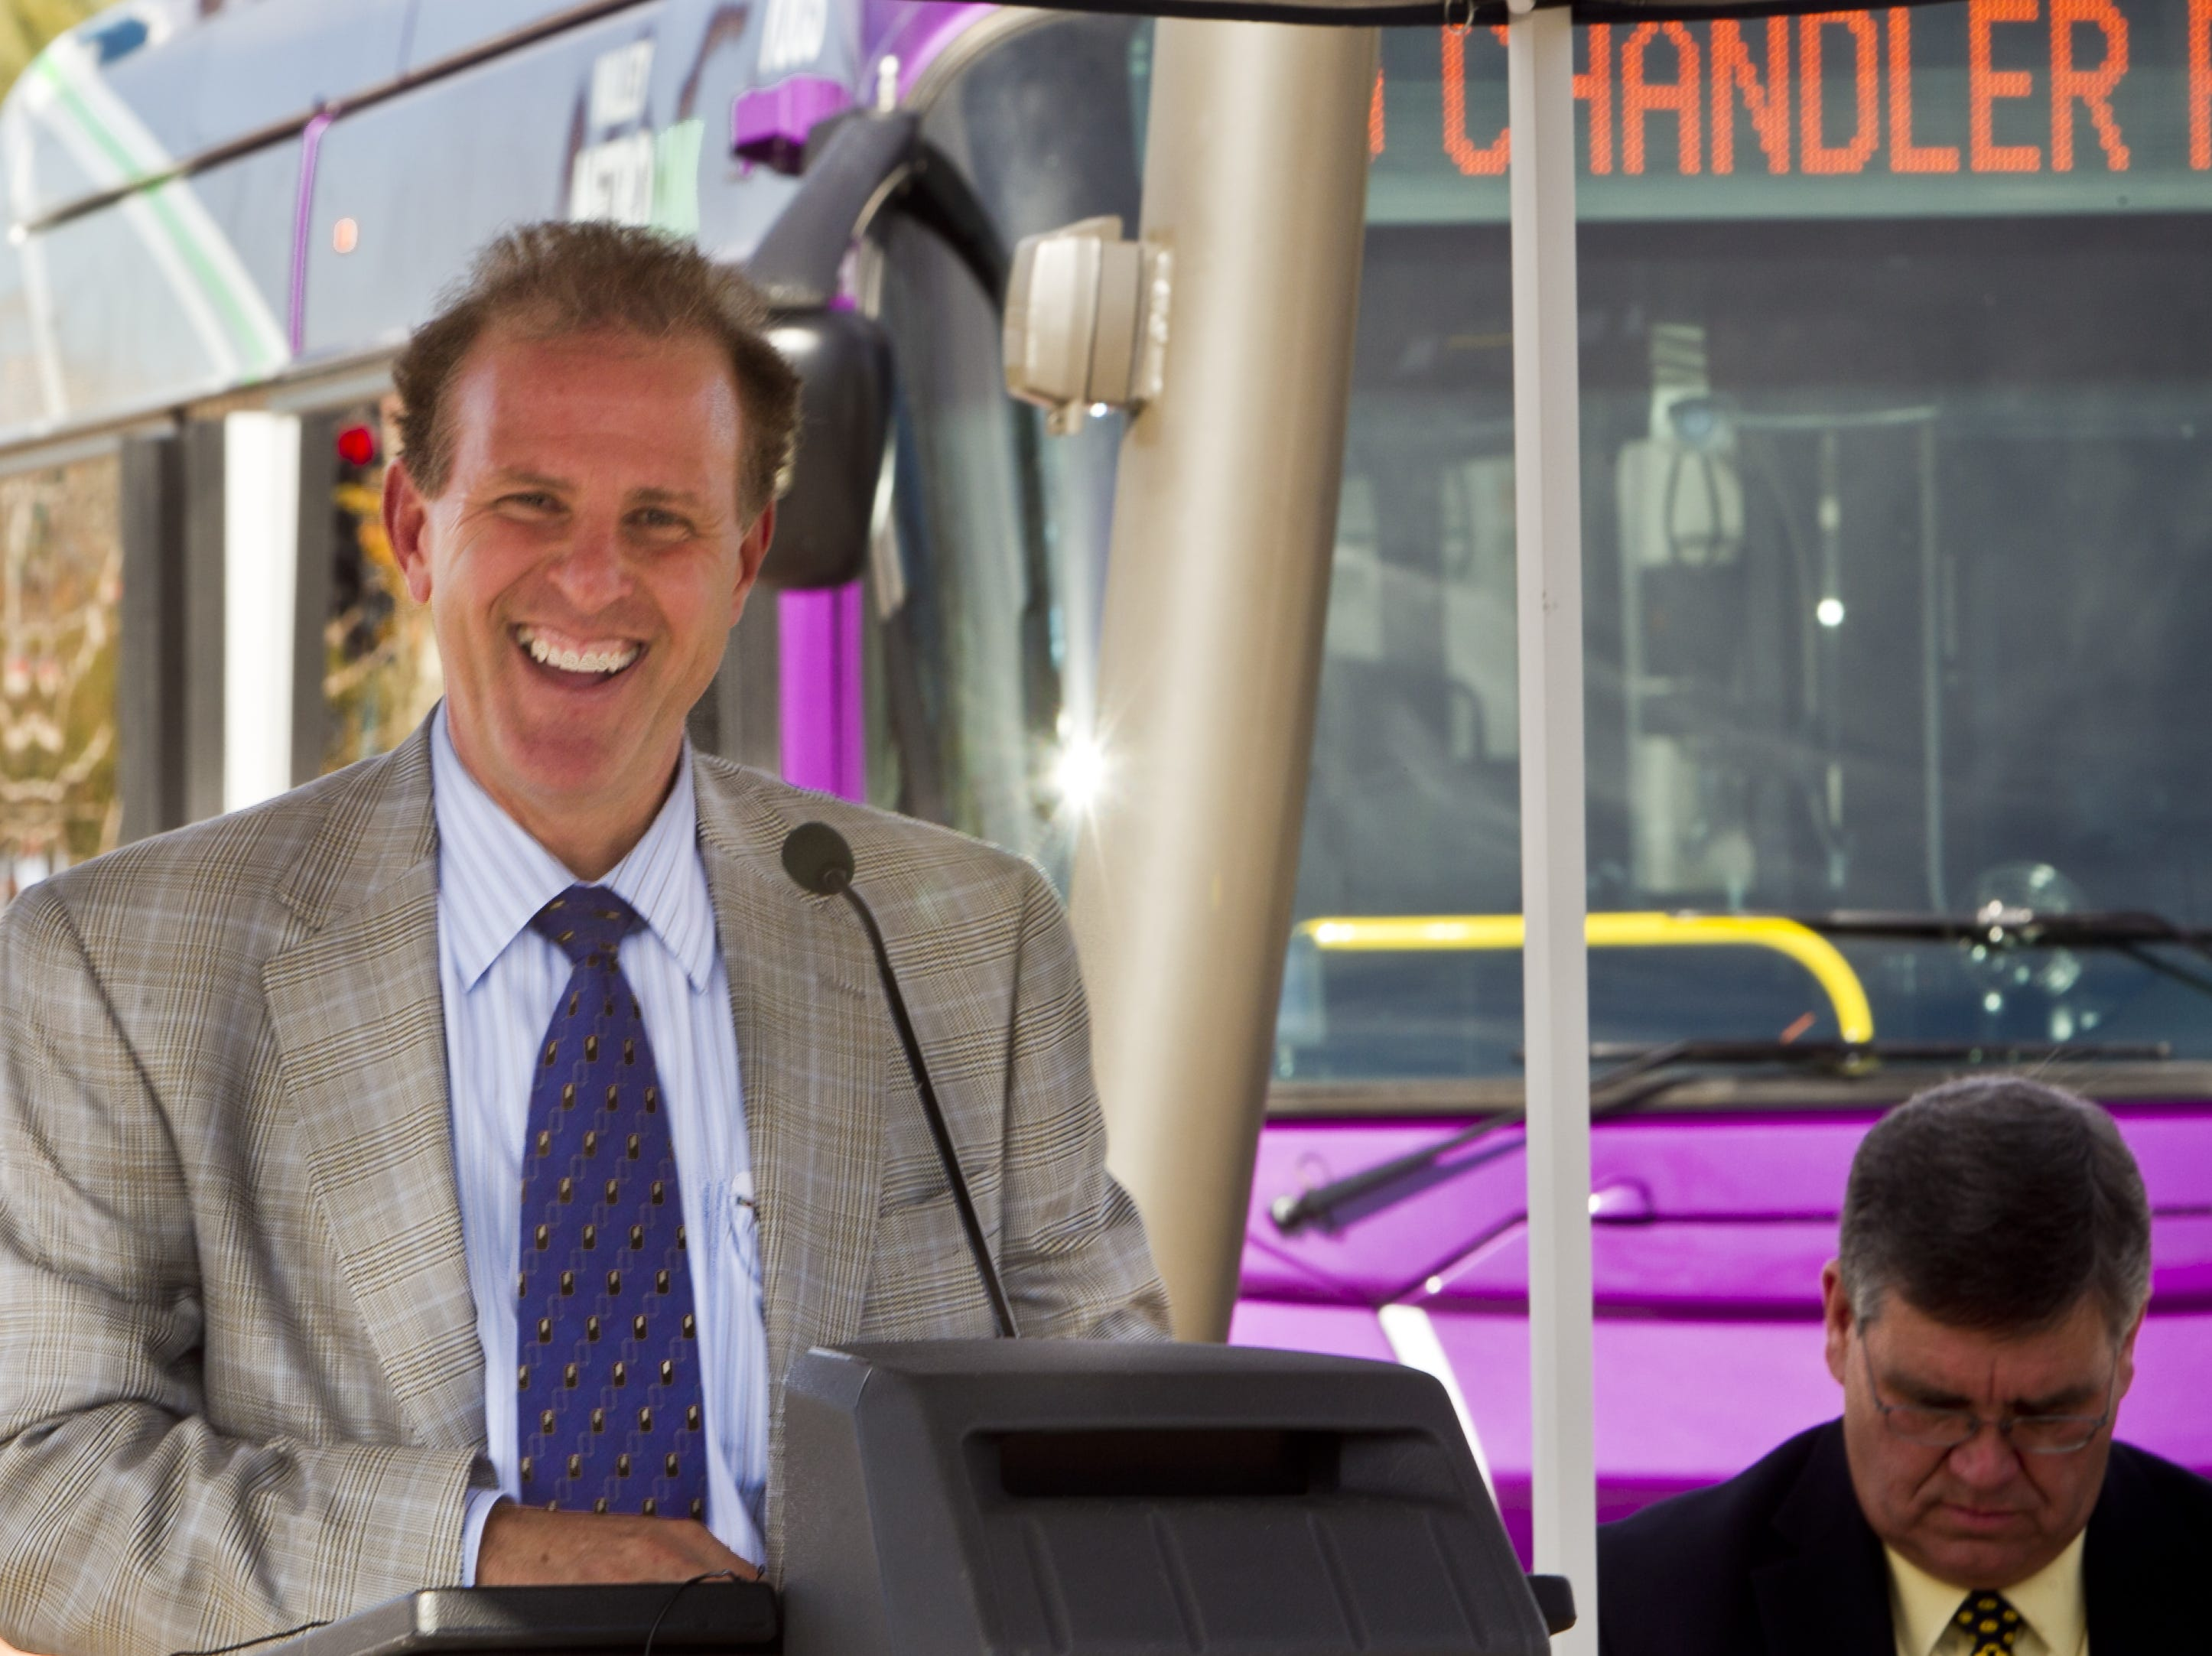 Chandler Mayor Jay Tibshraeny speaks at the dedication ceremony of the LINK bus service in downtown Chandler on Jan. 19, 2011. The bus line will connect Chandler and Gilbert, starting at the Tumbleweed Park, to the east end of the Valley Metro Light Rail in Mesa.